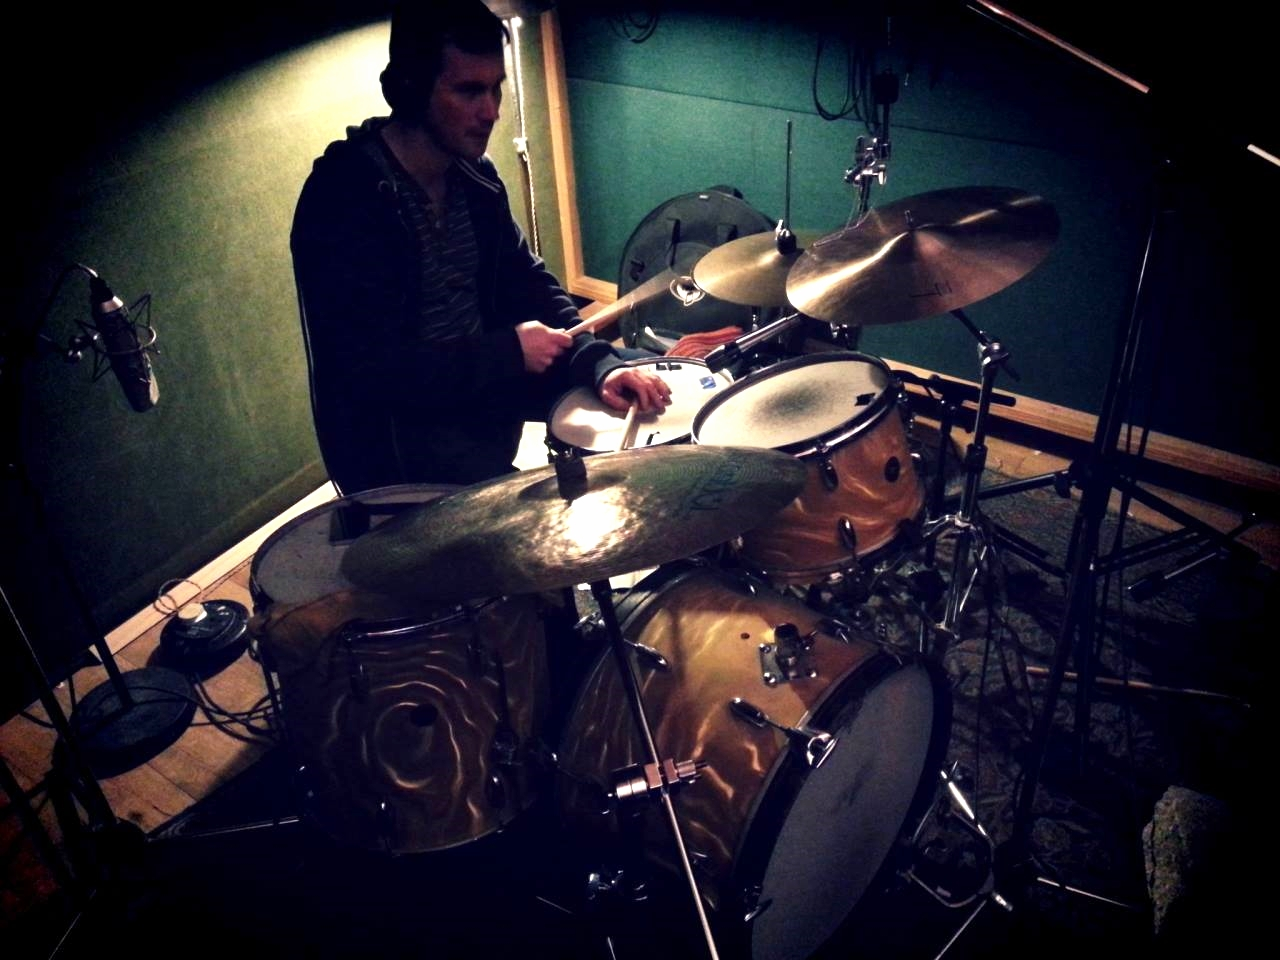 Tracking at Fish Factory with producer Ben Lamdin on a gorgeous old Gretsch Roundbadge